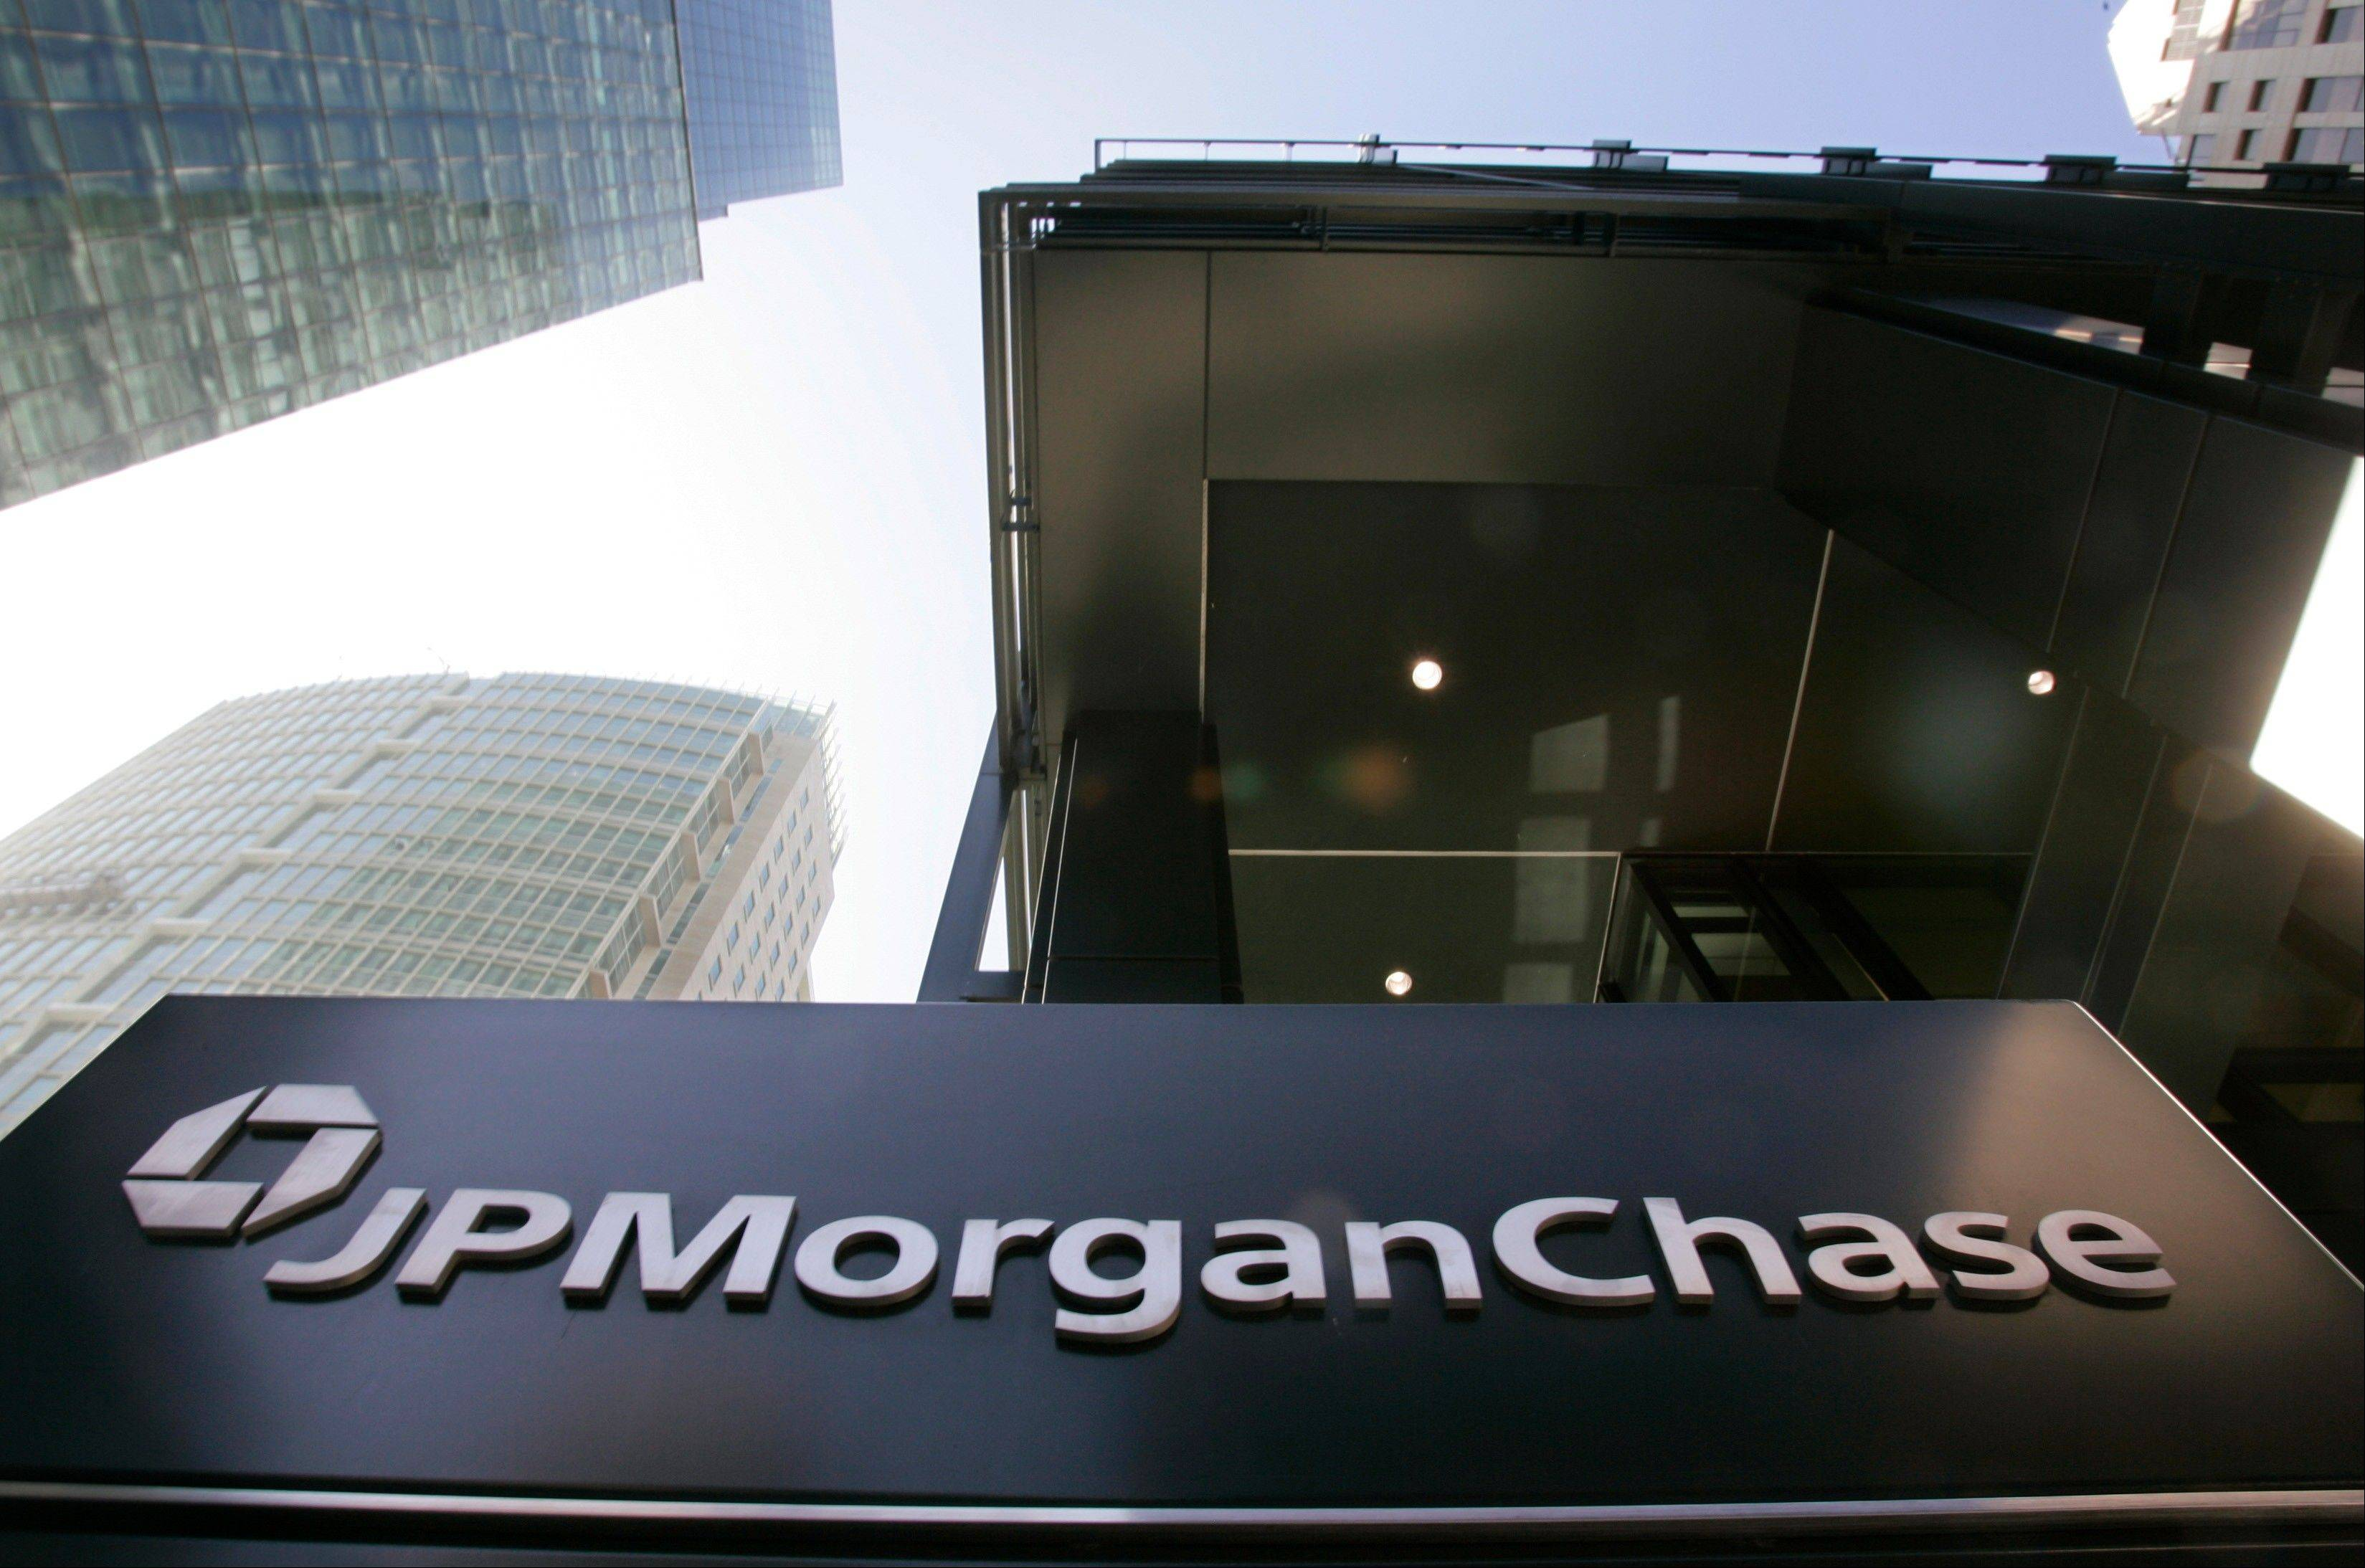 The exterior view of JPMorgan Chase offices in San Francisco.